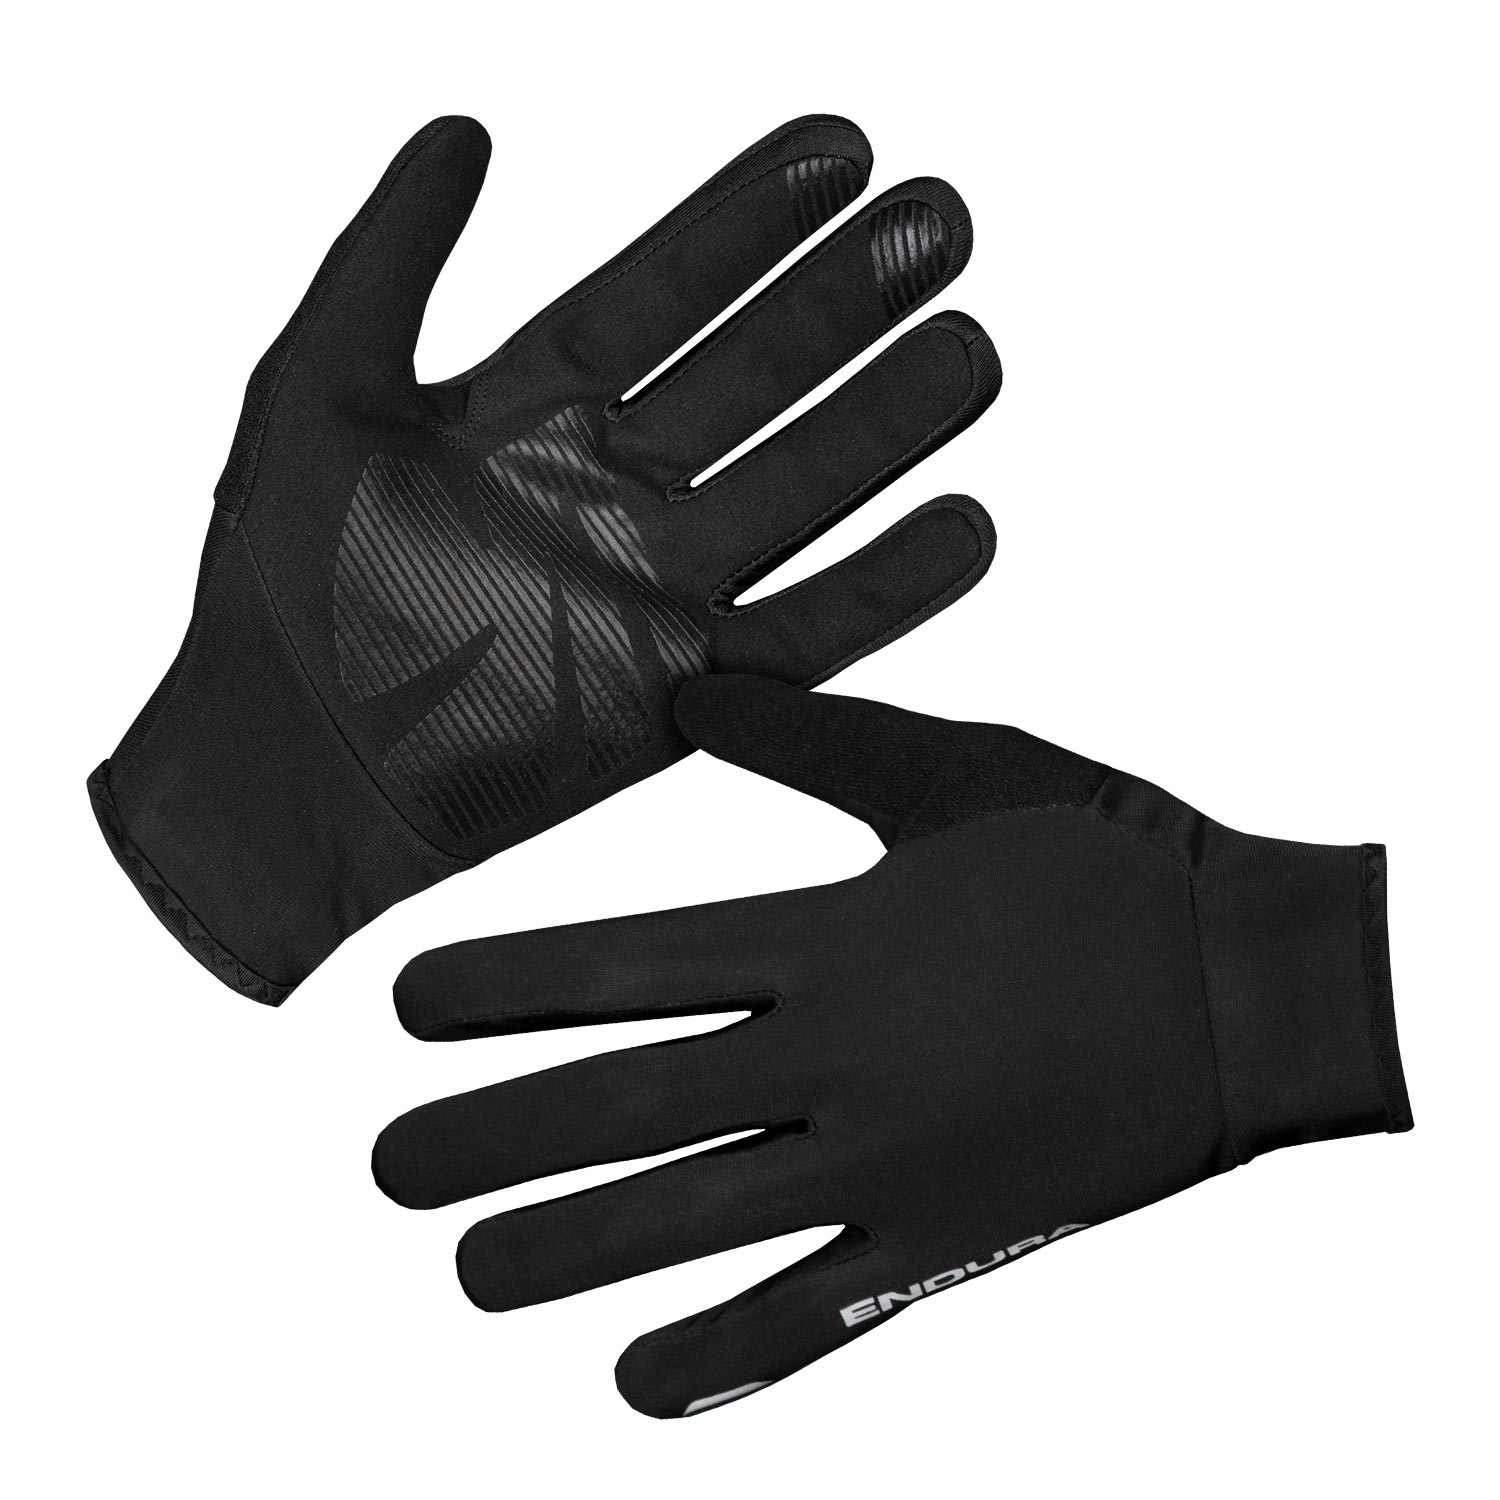 Endura FS260-Pro (Extra Extra Large) Thermo Cycling Gloves